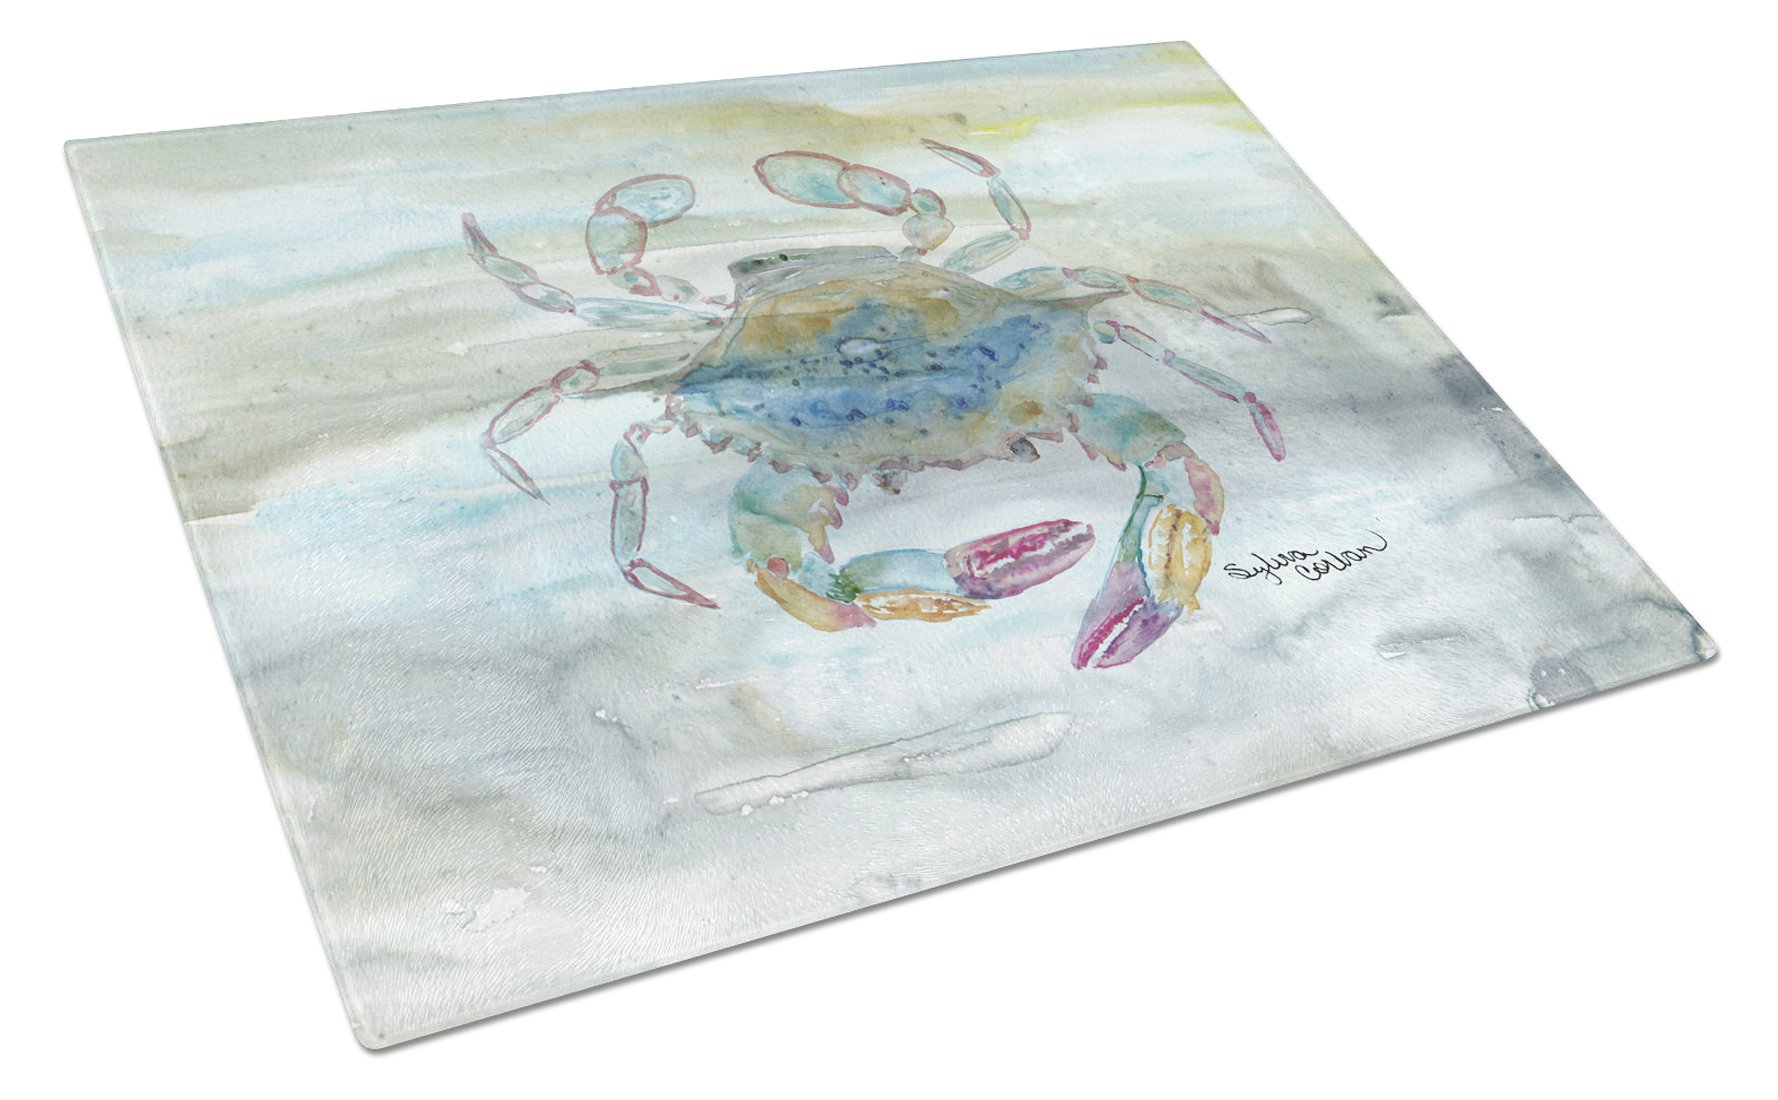 Female Blue Crab Watercolor Glass Cutting Board Large SC2005LCB by Caroline's Treasures